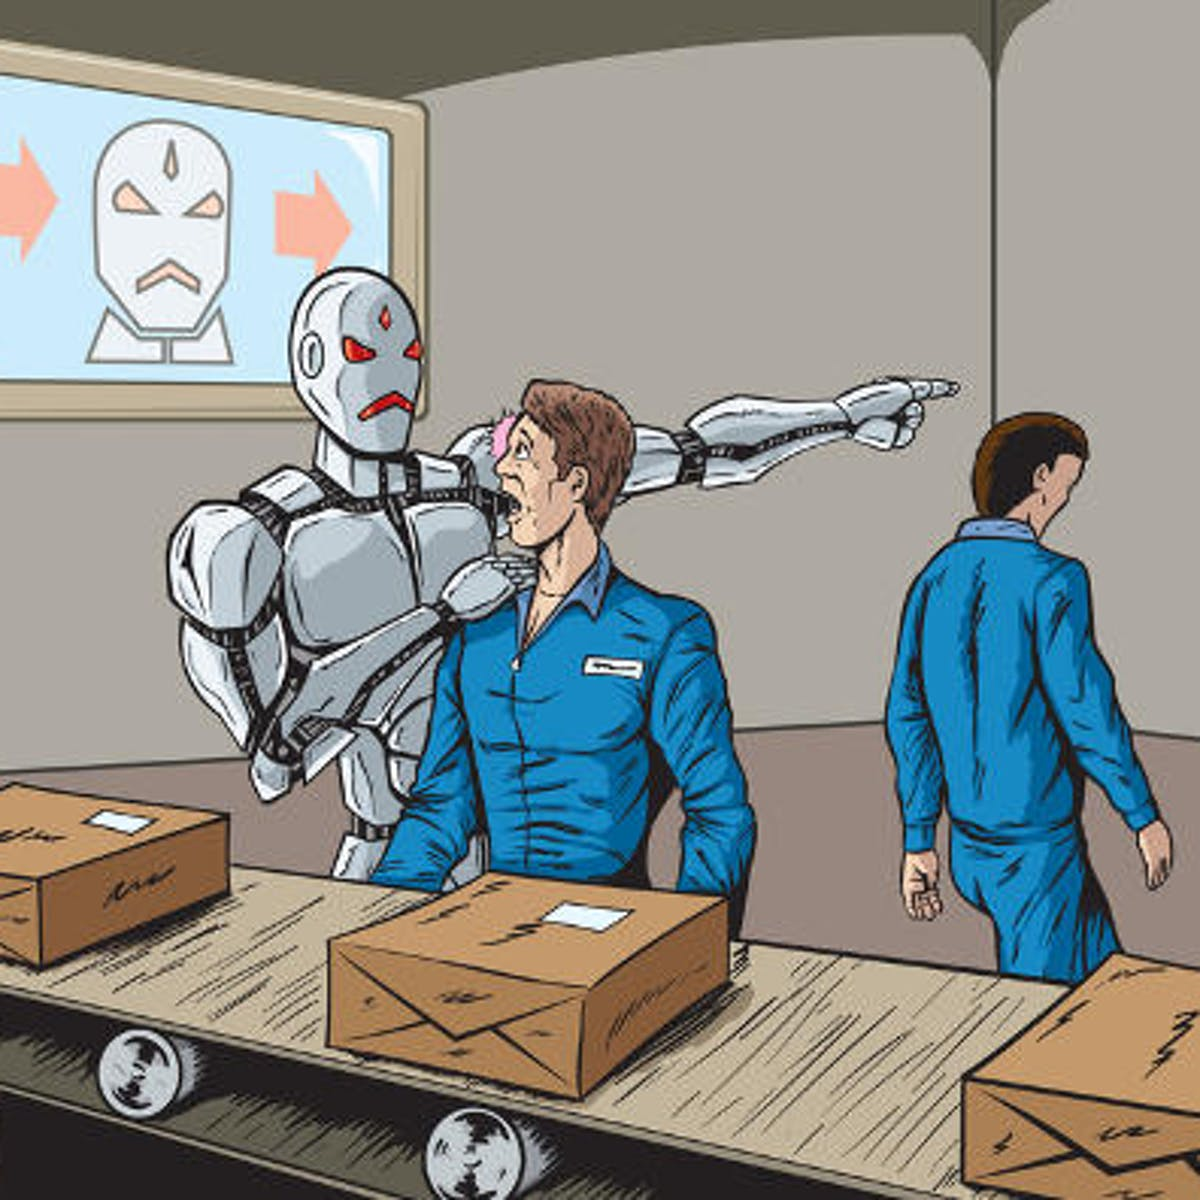 Study reveals how Americans feel about working with A.I.